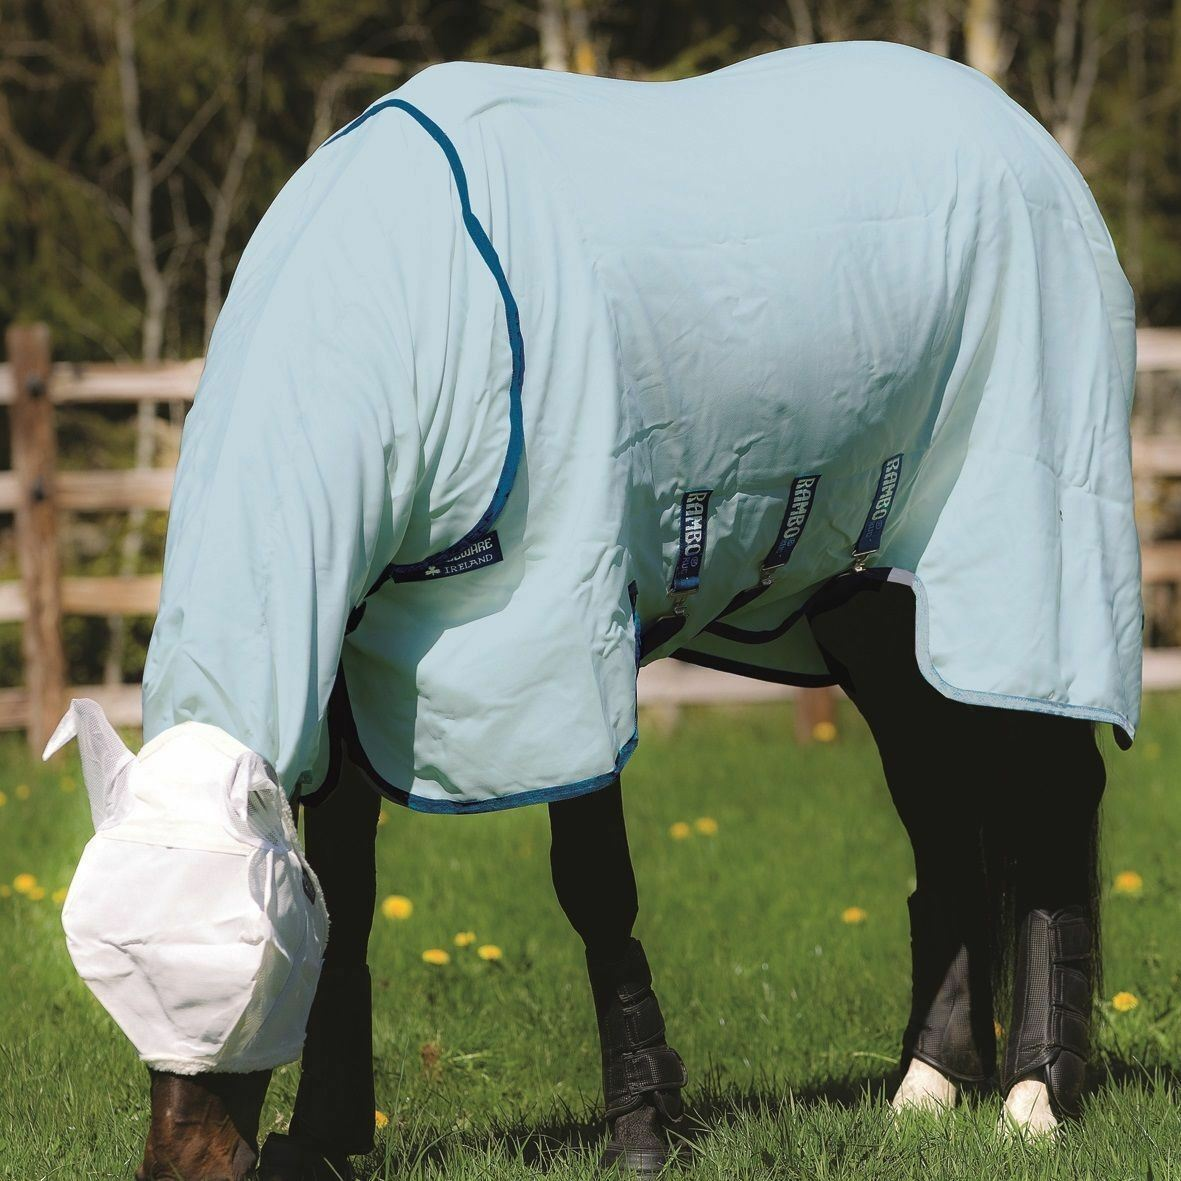 Rambo Sweetitch Hoody Fly Rug Sheet with Vamoose Insect Control FREE Fly Mask